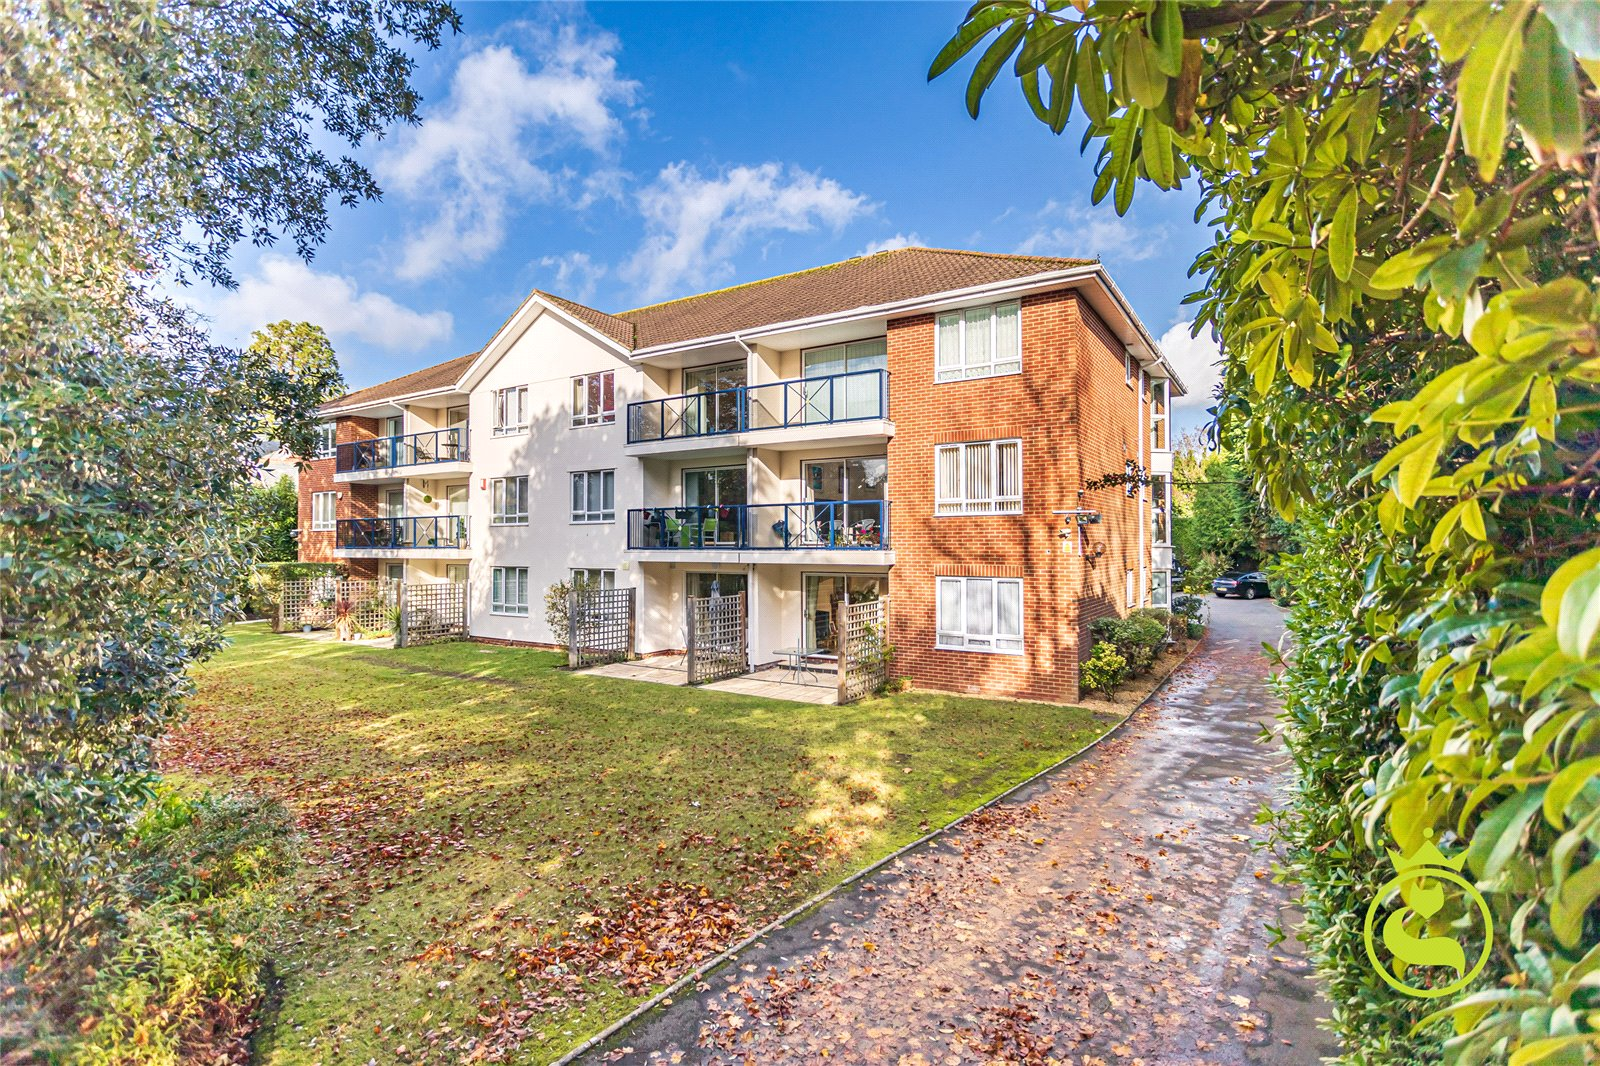 2 bed apartment to rent in Cavendish Road, Bournemouth, BH1